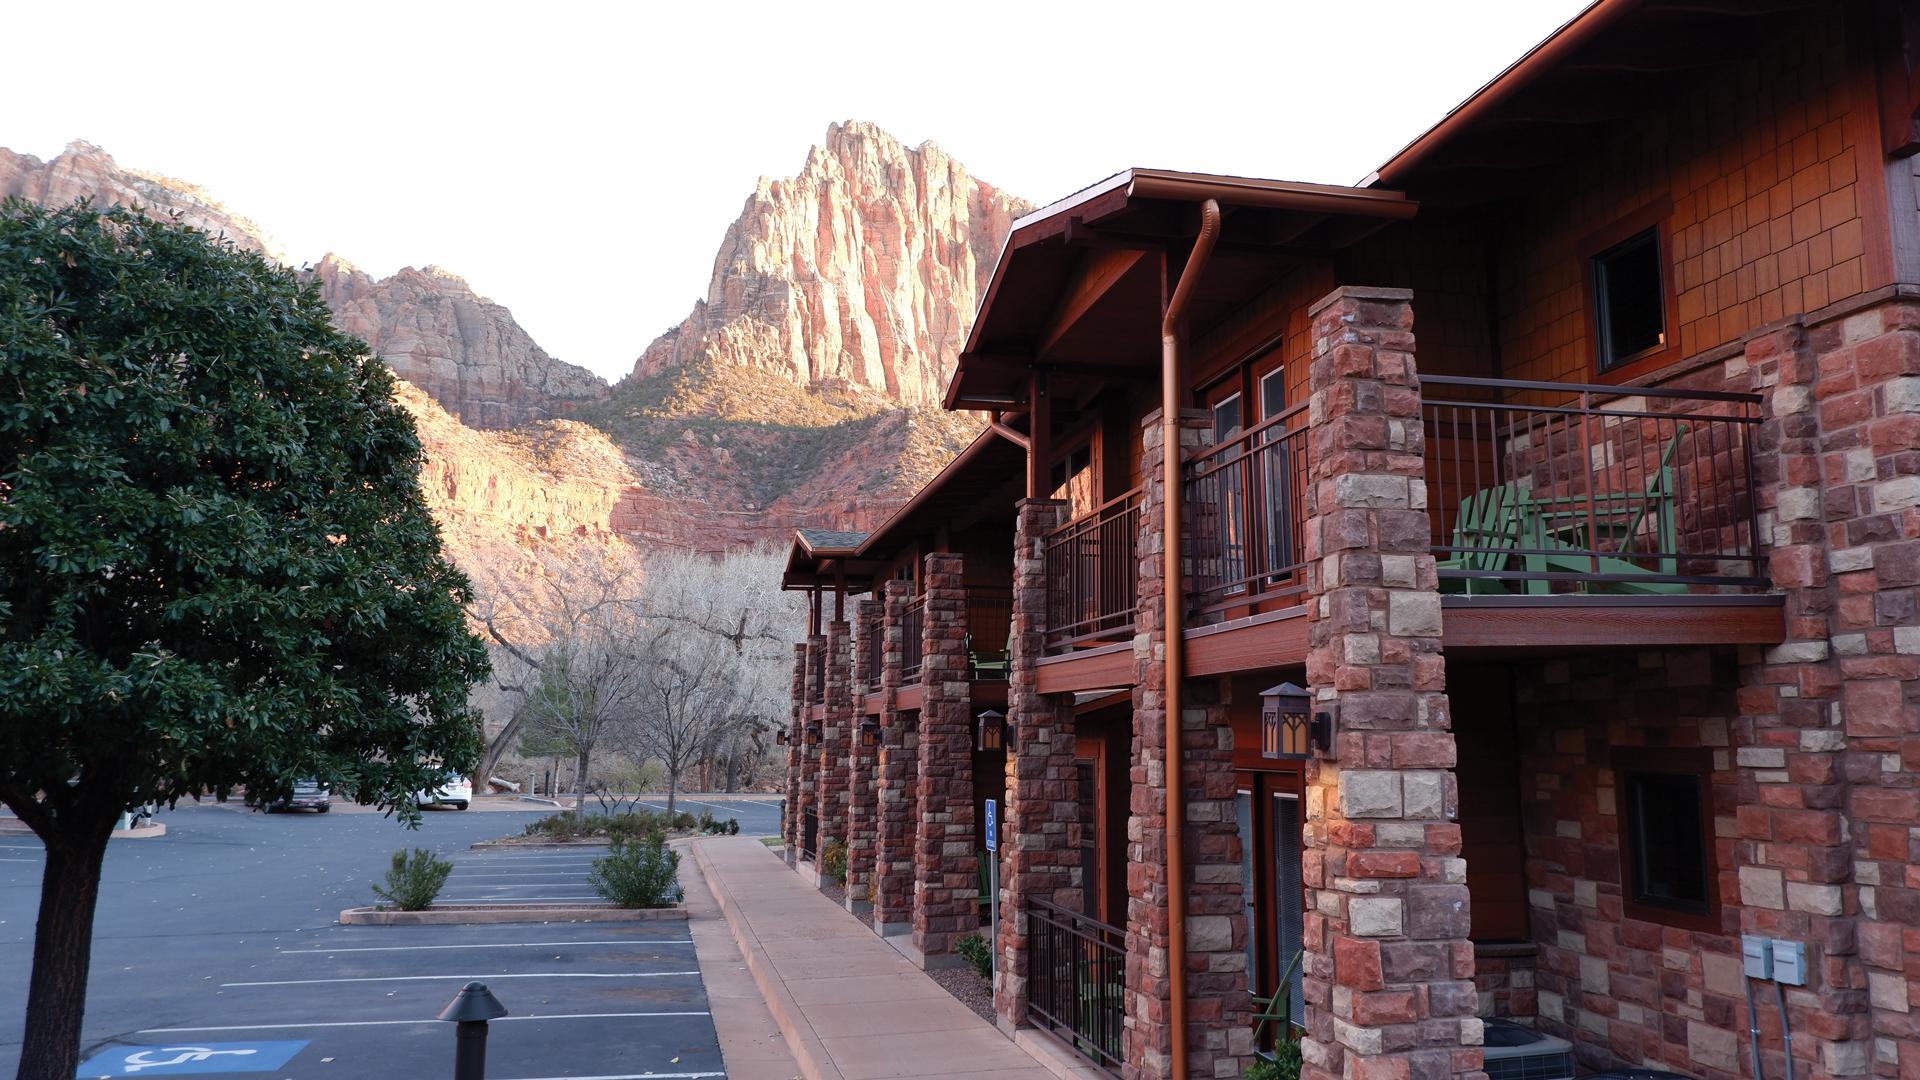 Winter river hiking in Zion National Park: Cable Mountain Lodge in Springdale, Utah